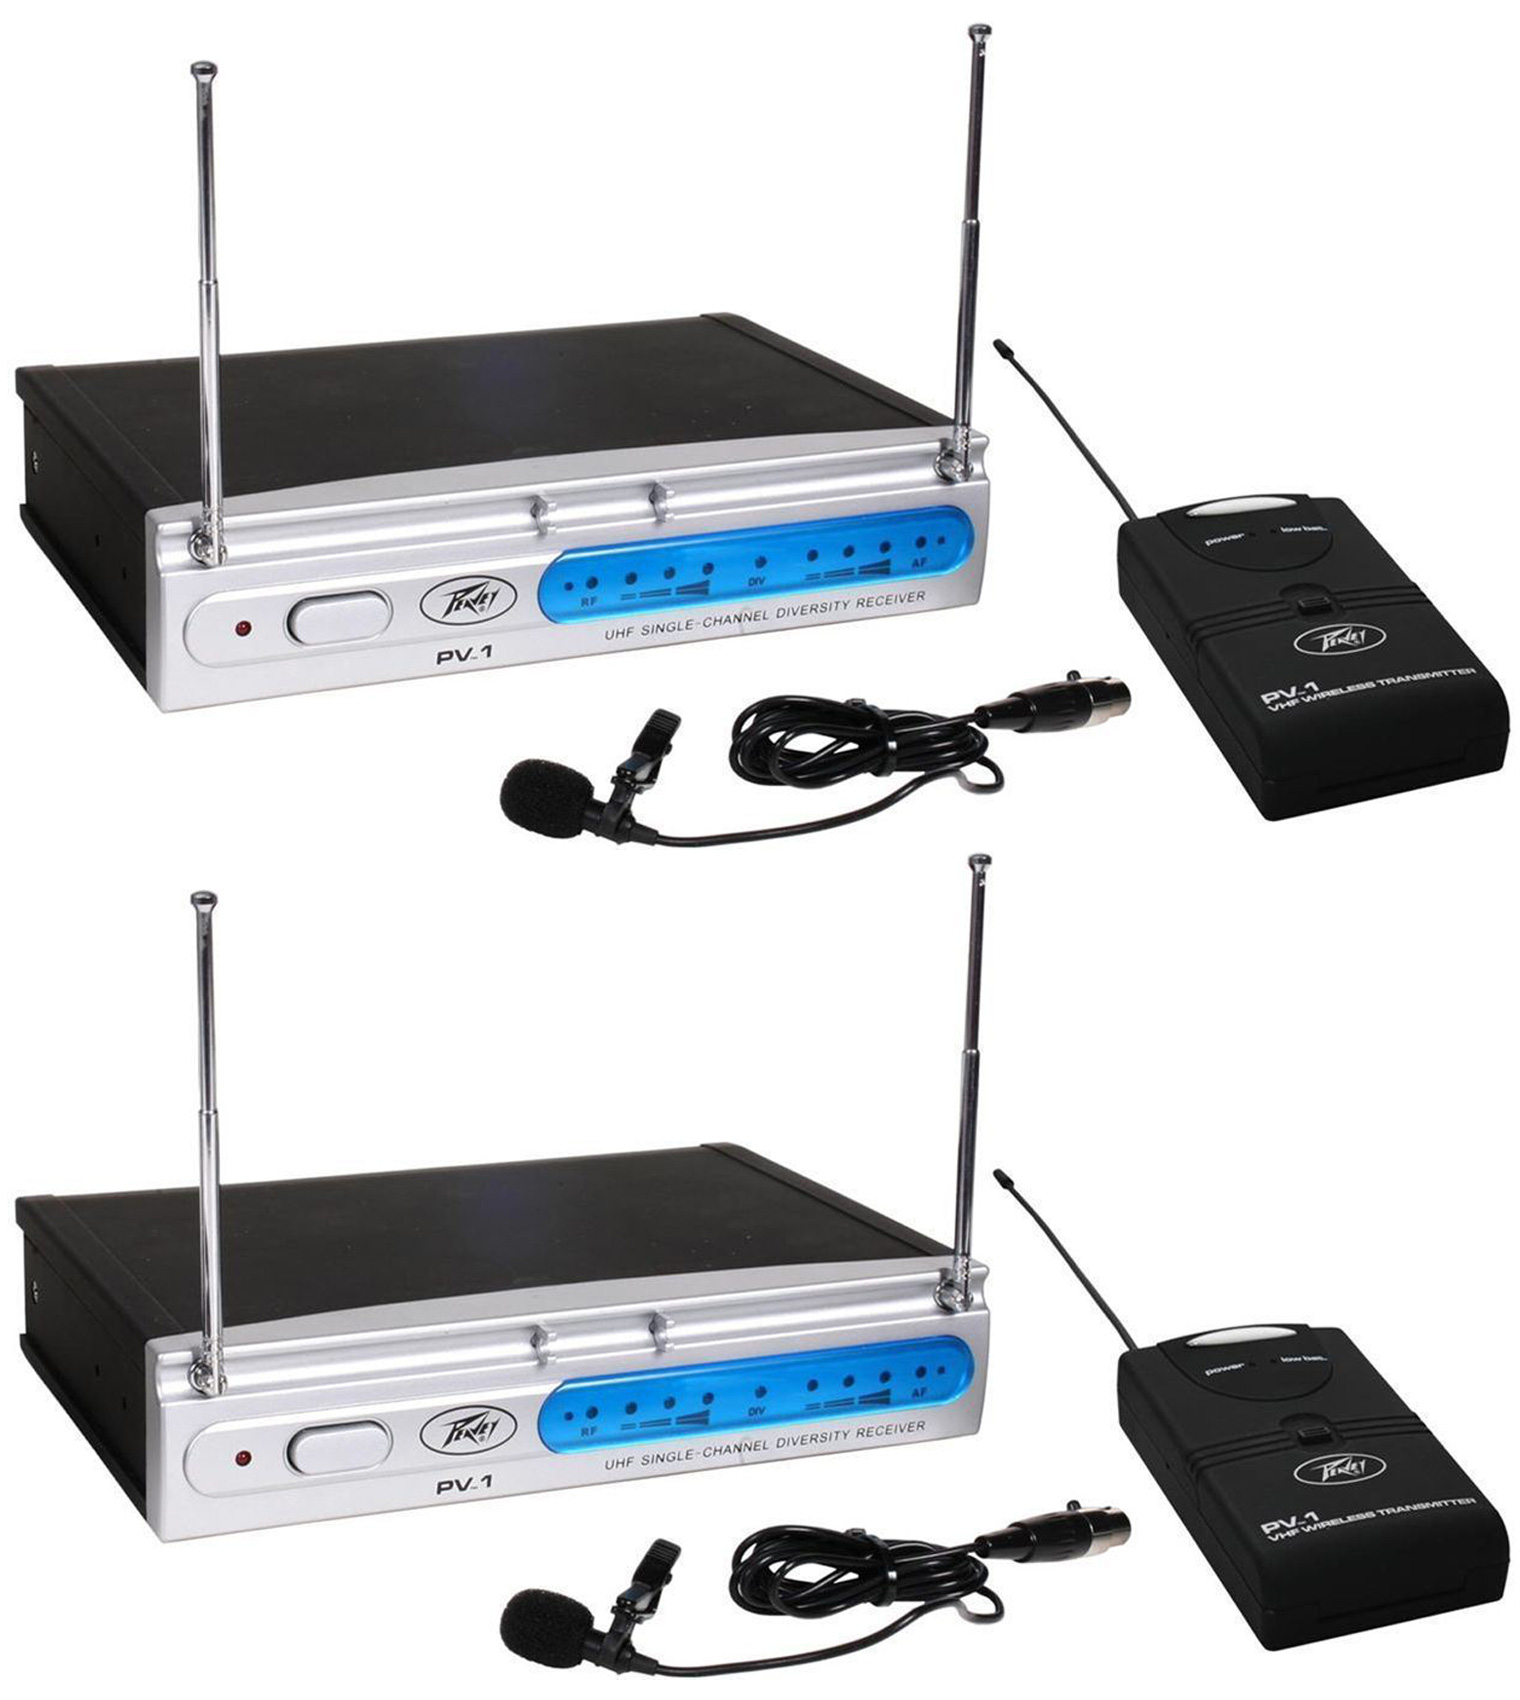 (2) Peavey PV-1 U1 BL 906Mhz UHF Wireless Lavalier Microphone Systems by Peavey